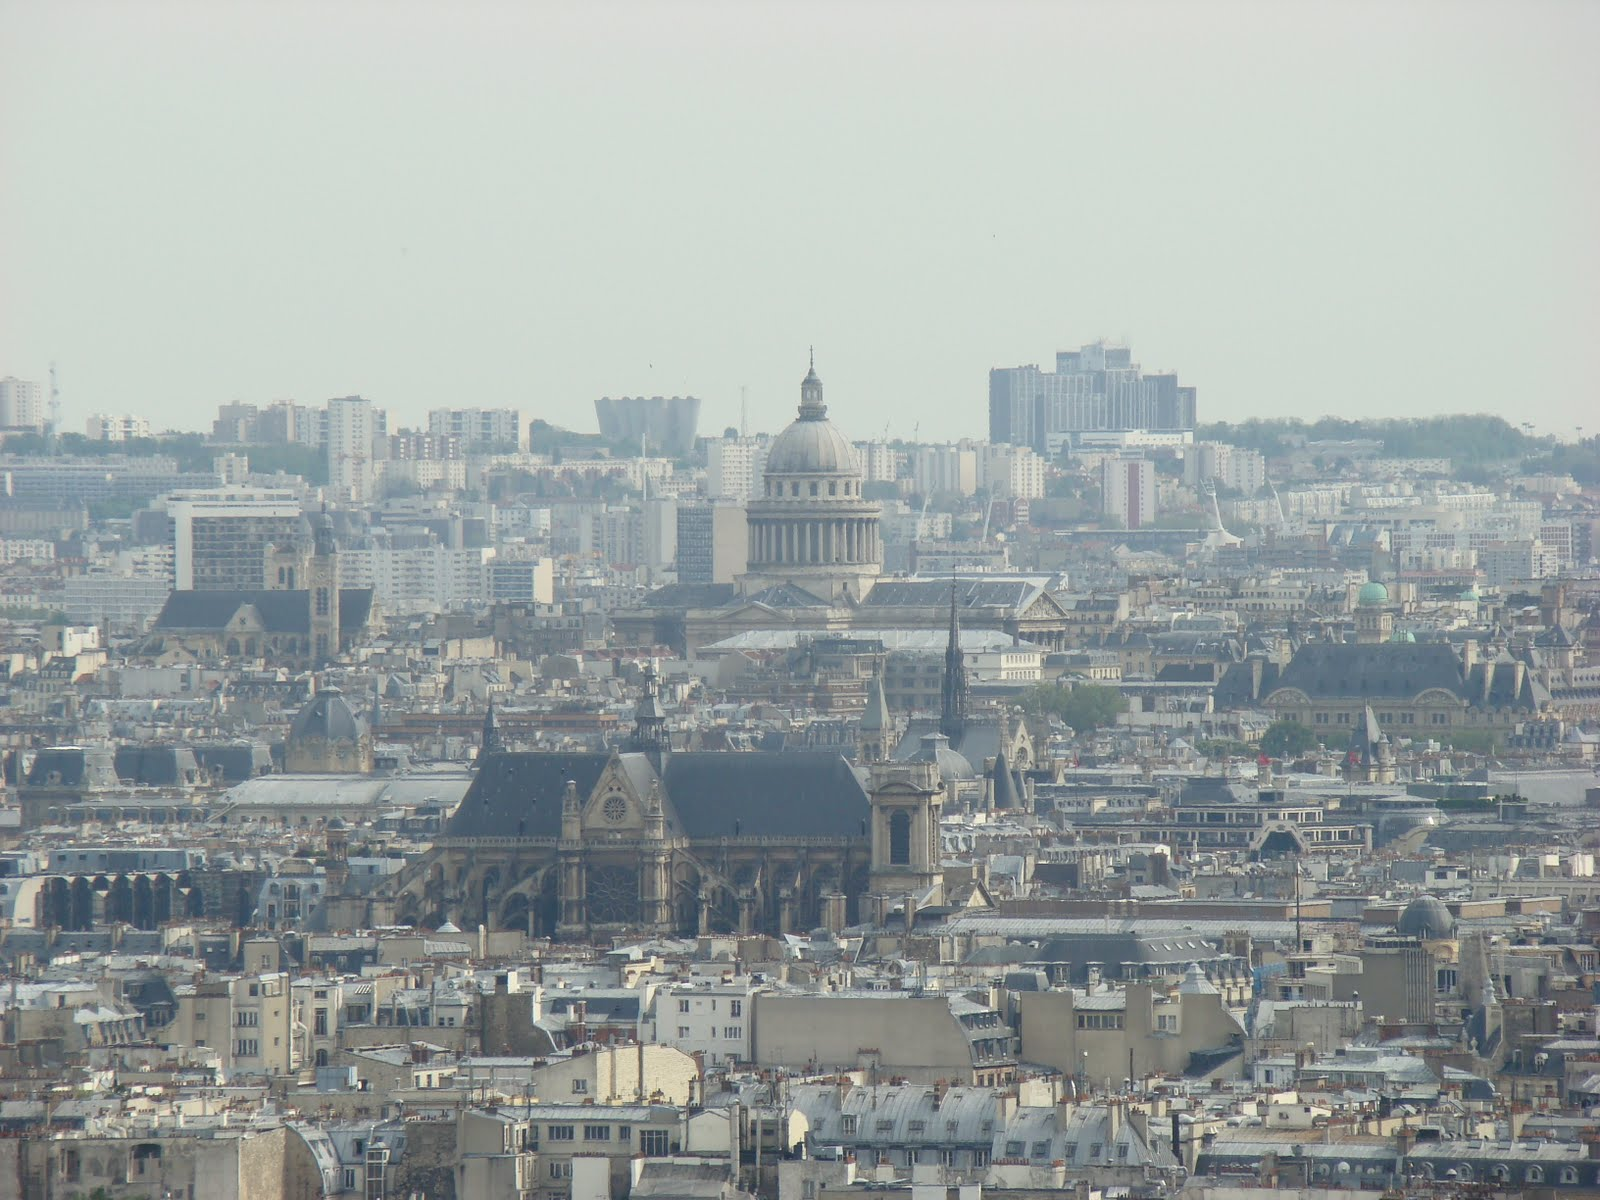 Photos-Panoramique-Paris-France-Tour-Eiffel-Sacre-Coeur-Montparnasse-Ciel-Institut-Monde-Arabe